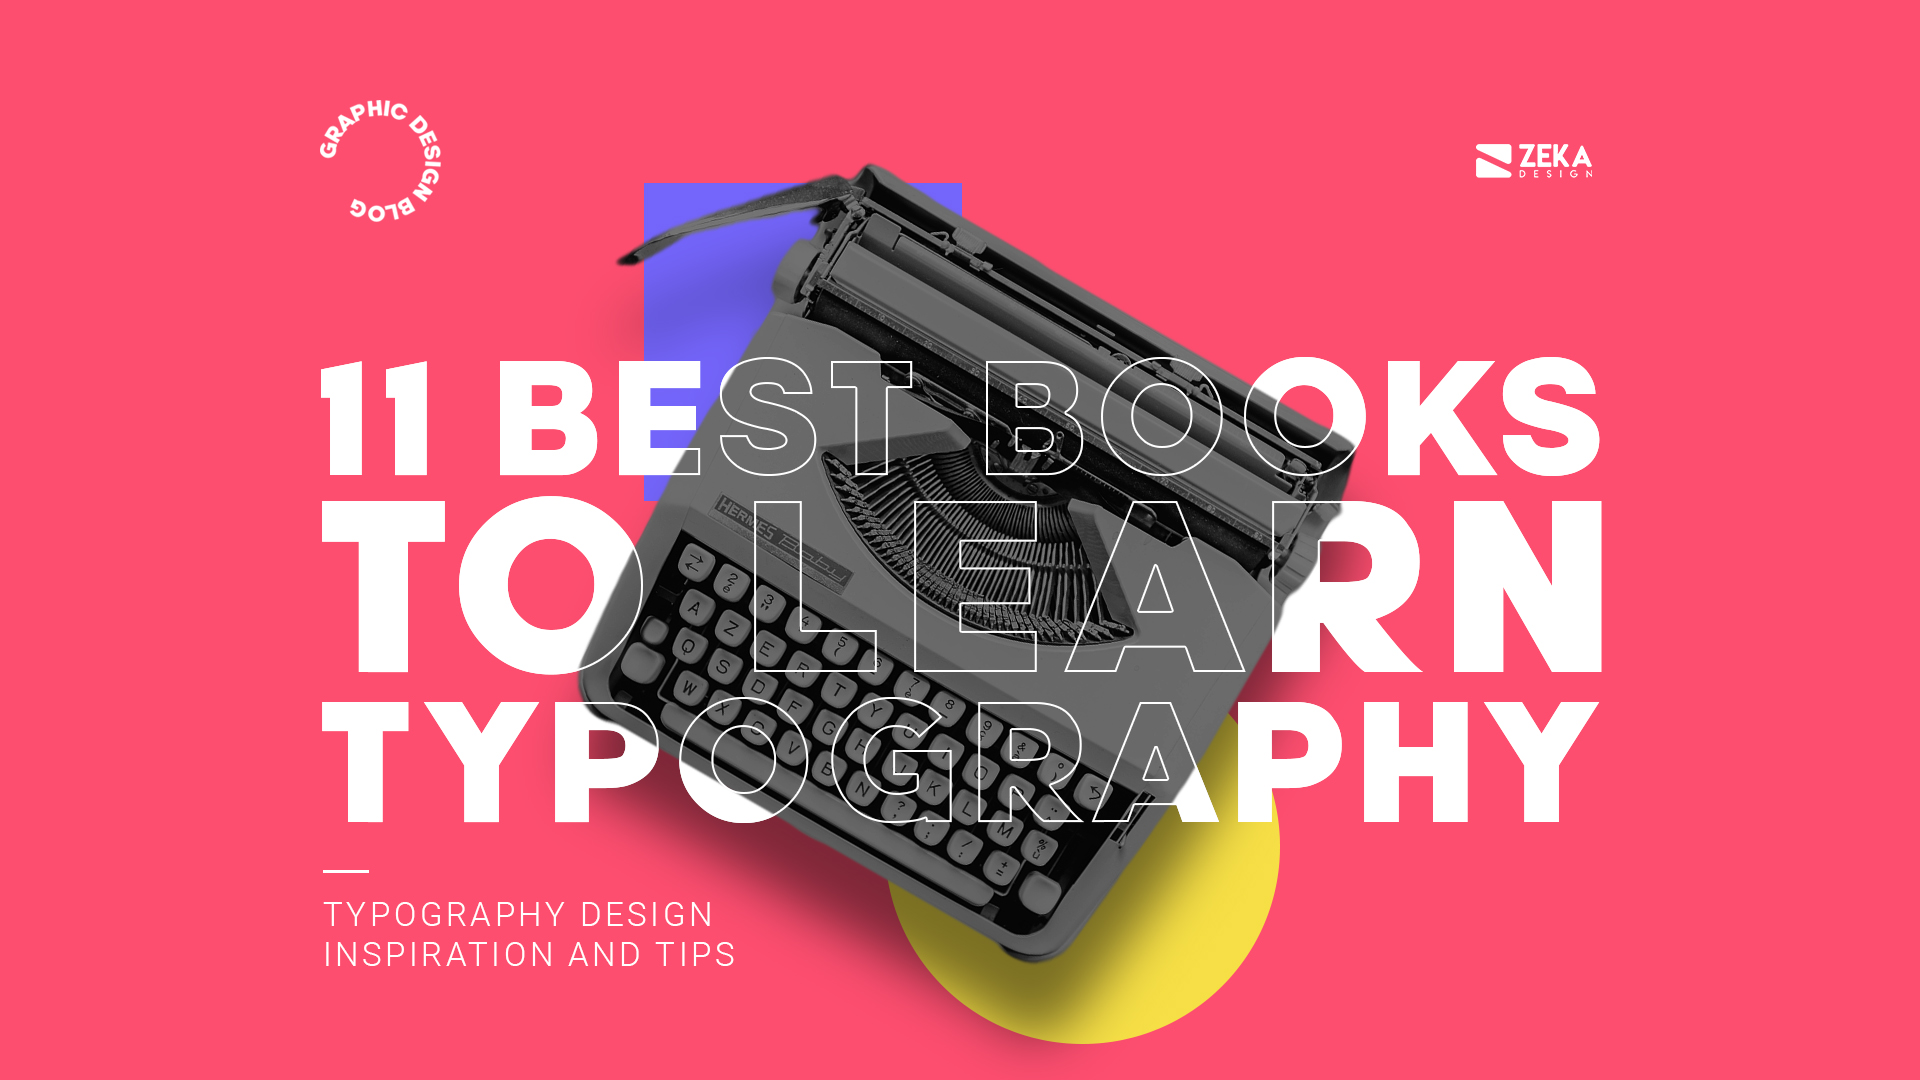 11 Best Typography Design Books For Inspiration